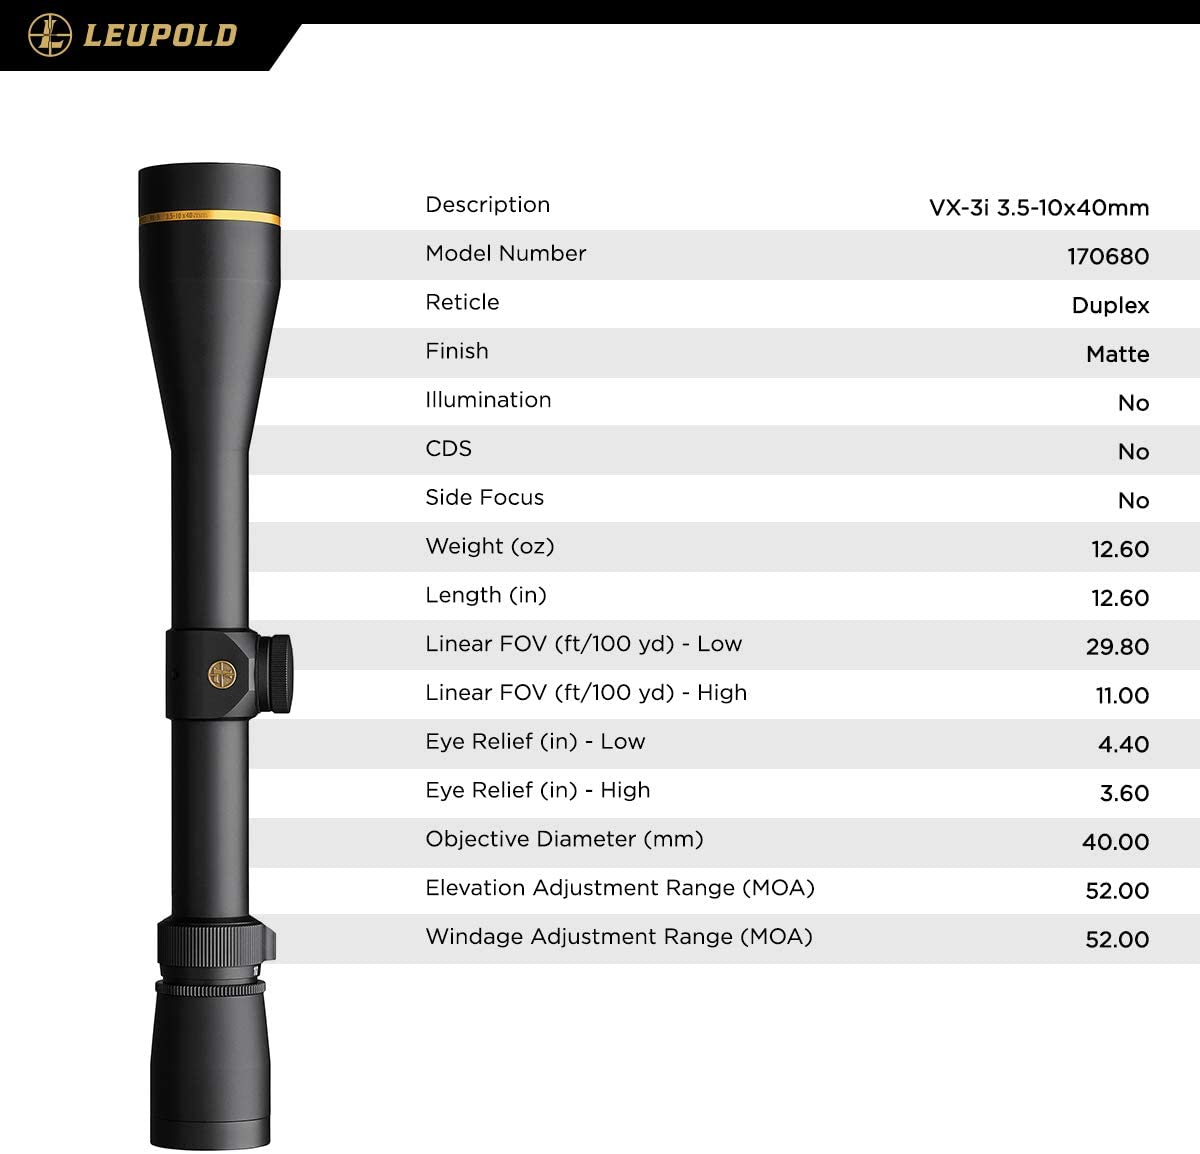 Leupold VX-3i 3.5-10x40mm Riflescope